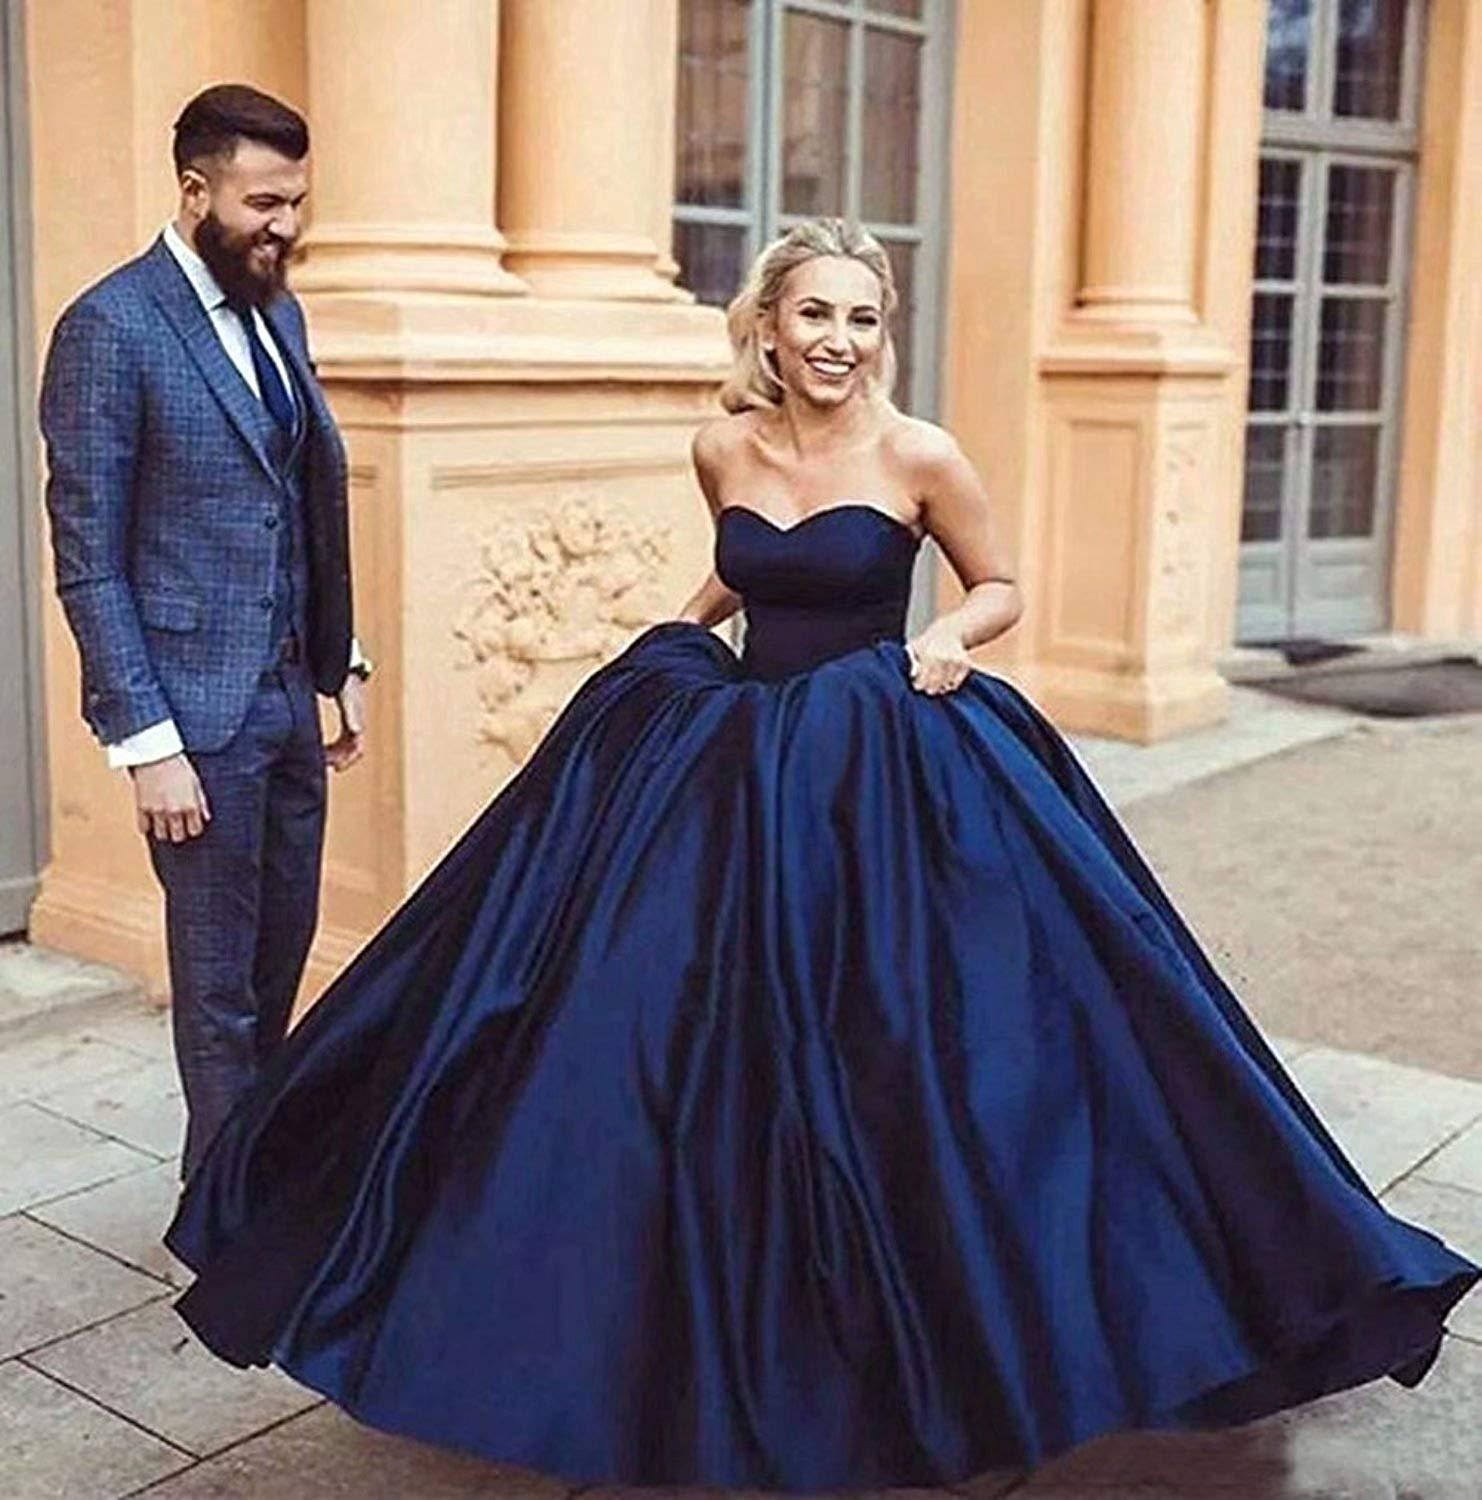 c4255fc6209 Ball Gown Prom Dresses 2019 Strapless Sleeveless Corset Puffy Evening Gowns  Cocktail Party Ball Quinceanera Dress Celebrity Formal Gown Terani Prom  Dresses ...